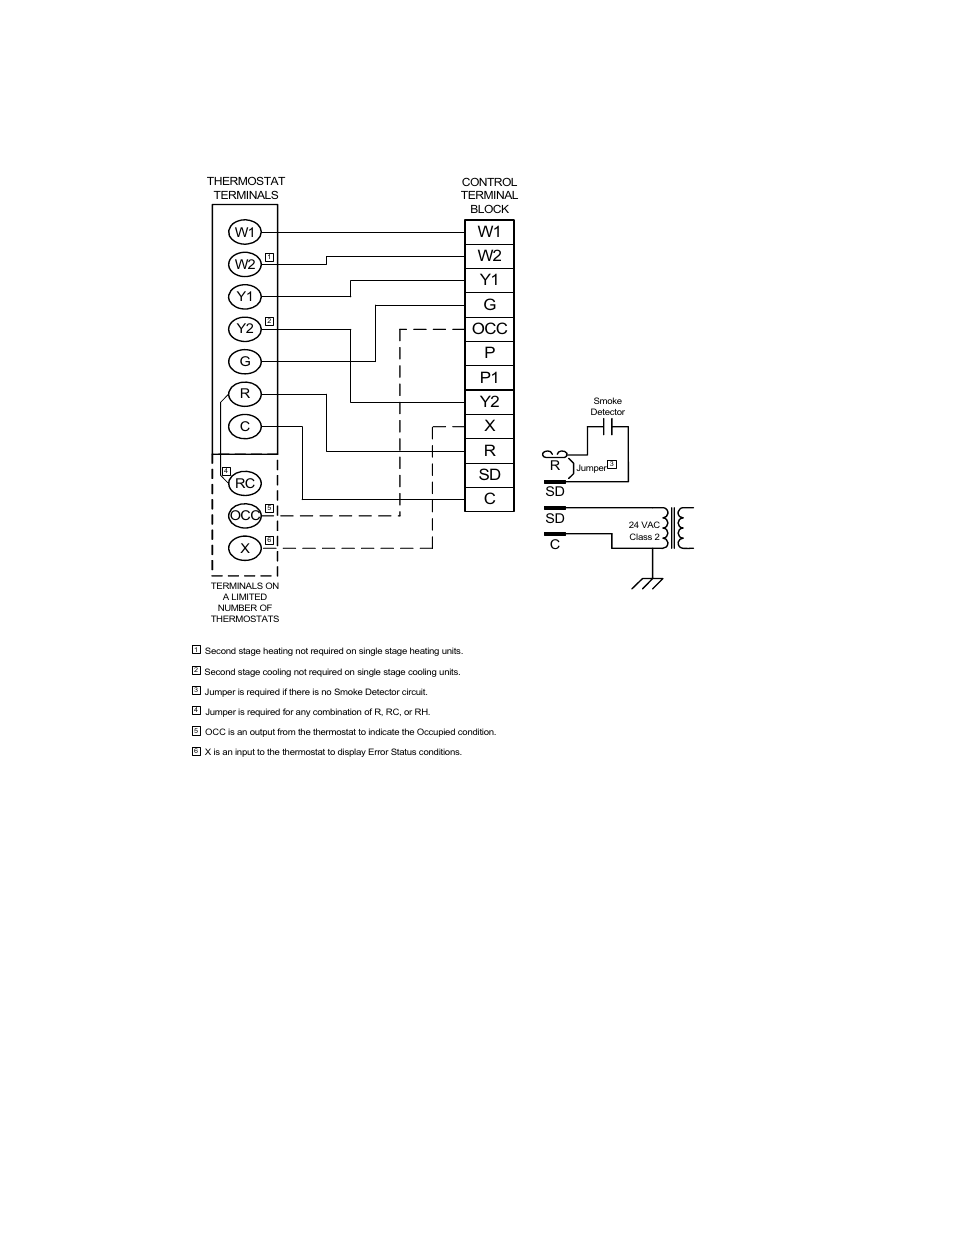 typical simplicity® wiring diagram, figure 13 - typical simplicity ... dj wiring diagram  manuals directory